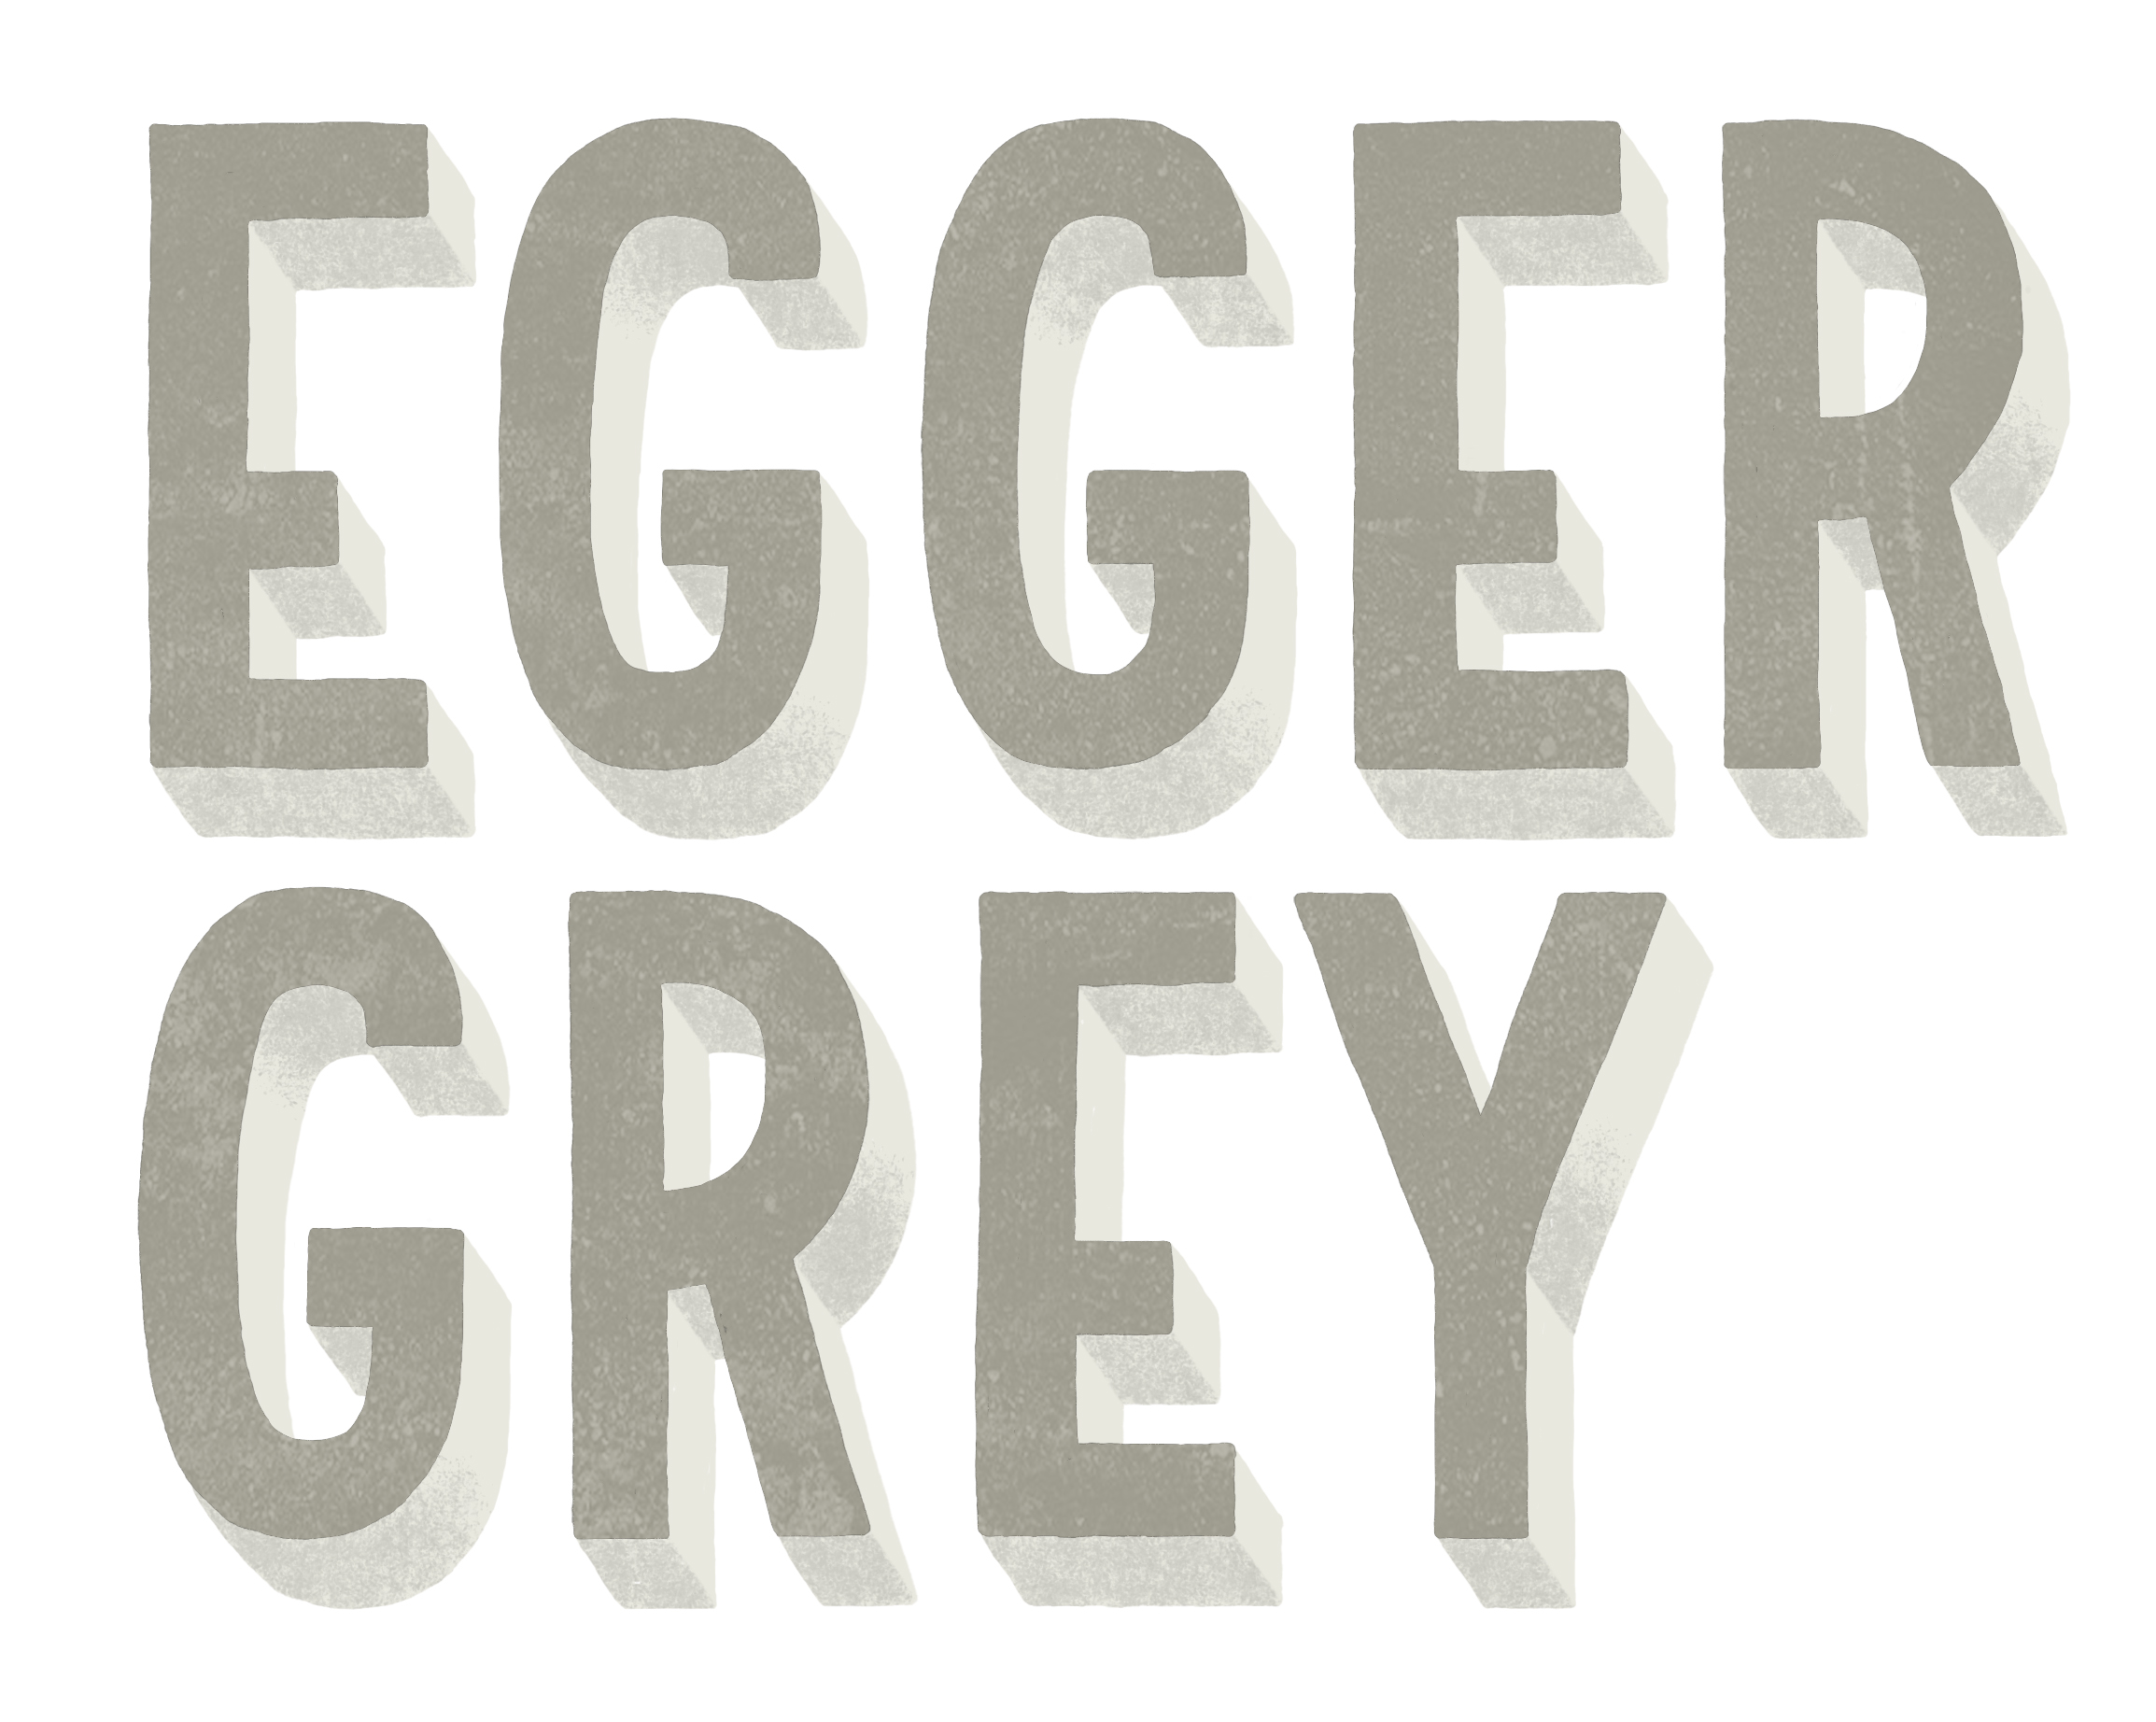 Egger Grey Artist Management